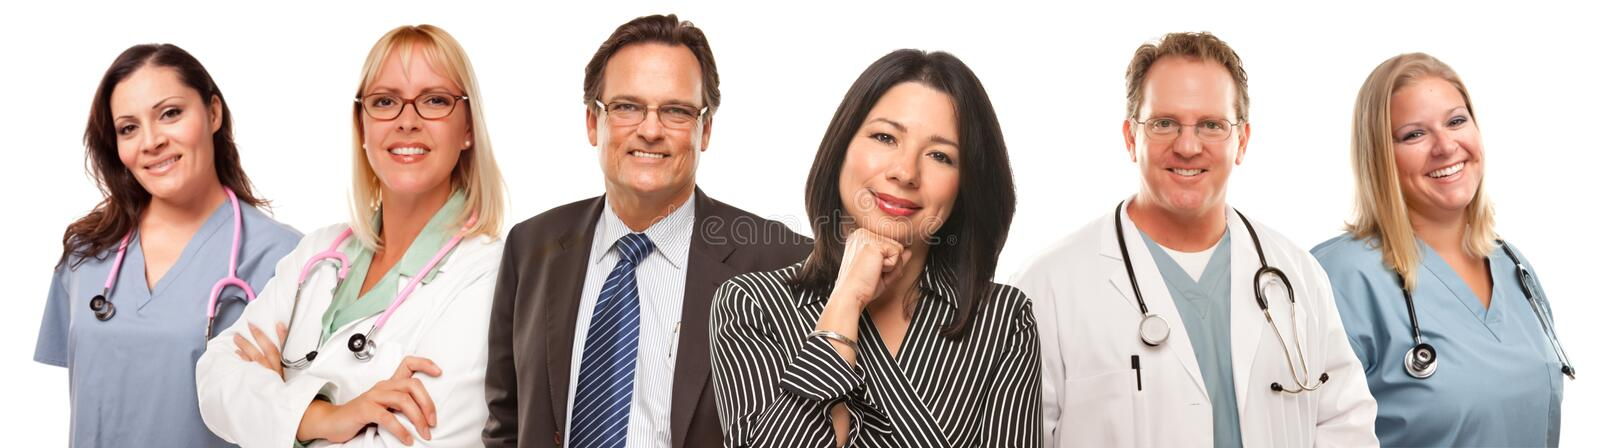 Hispanic Woman and Man with Doctors or Nurses royalty free stock photography